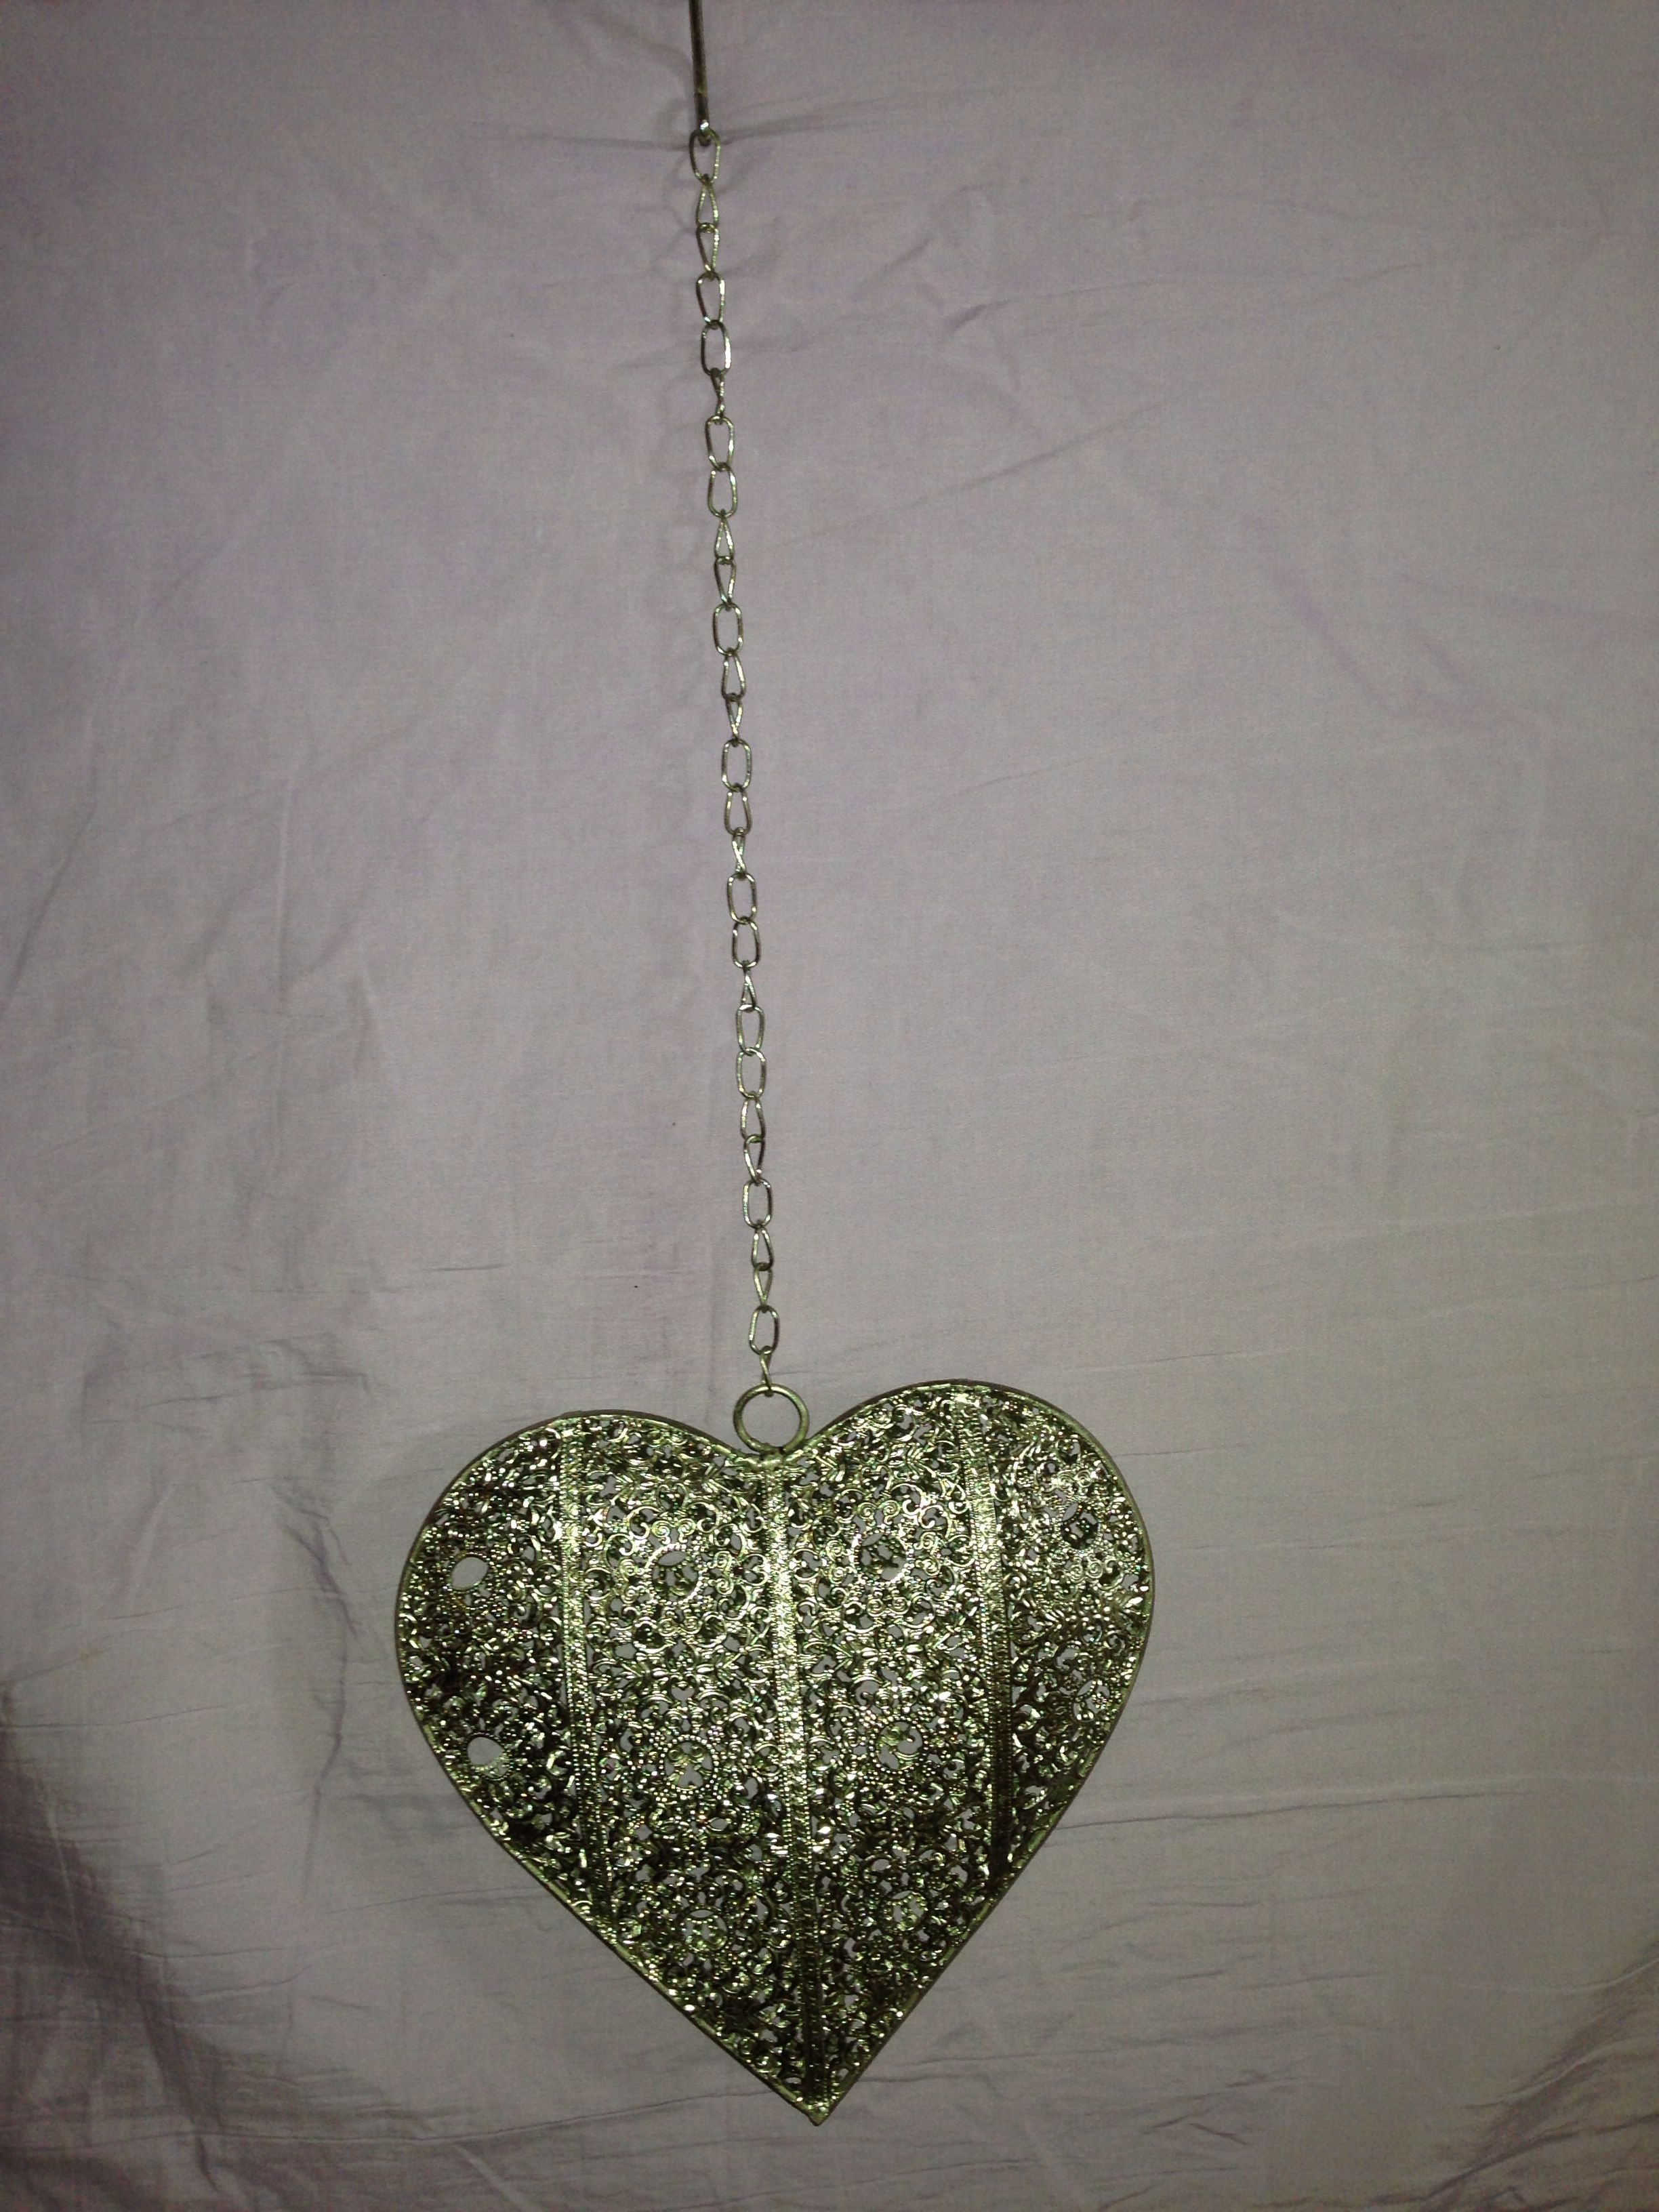 Hanging Silver Heart 10 From Jolly Ollie S Home Decor Ceiling Lights Decor